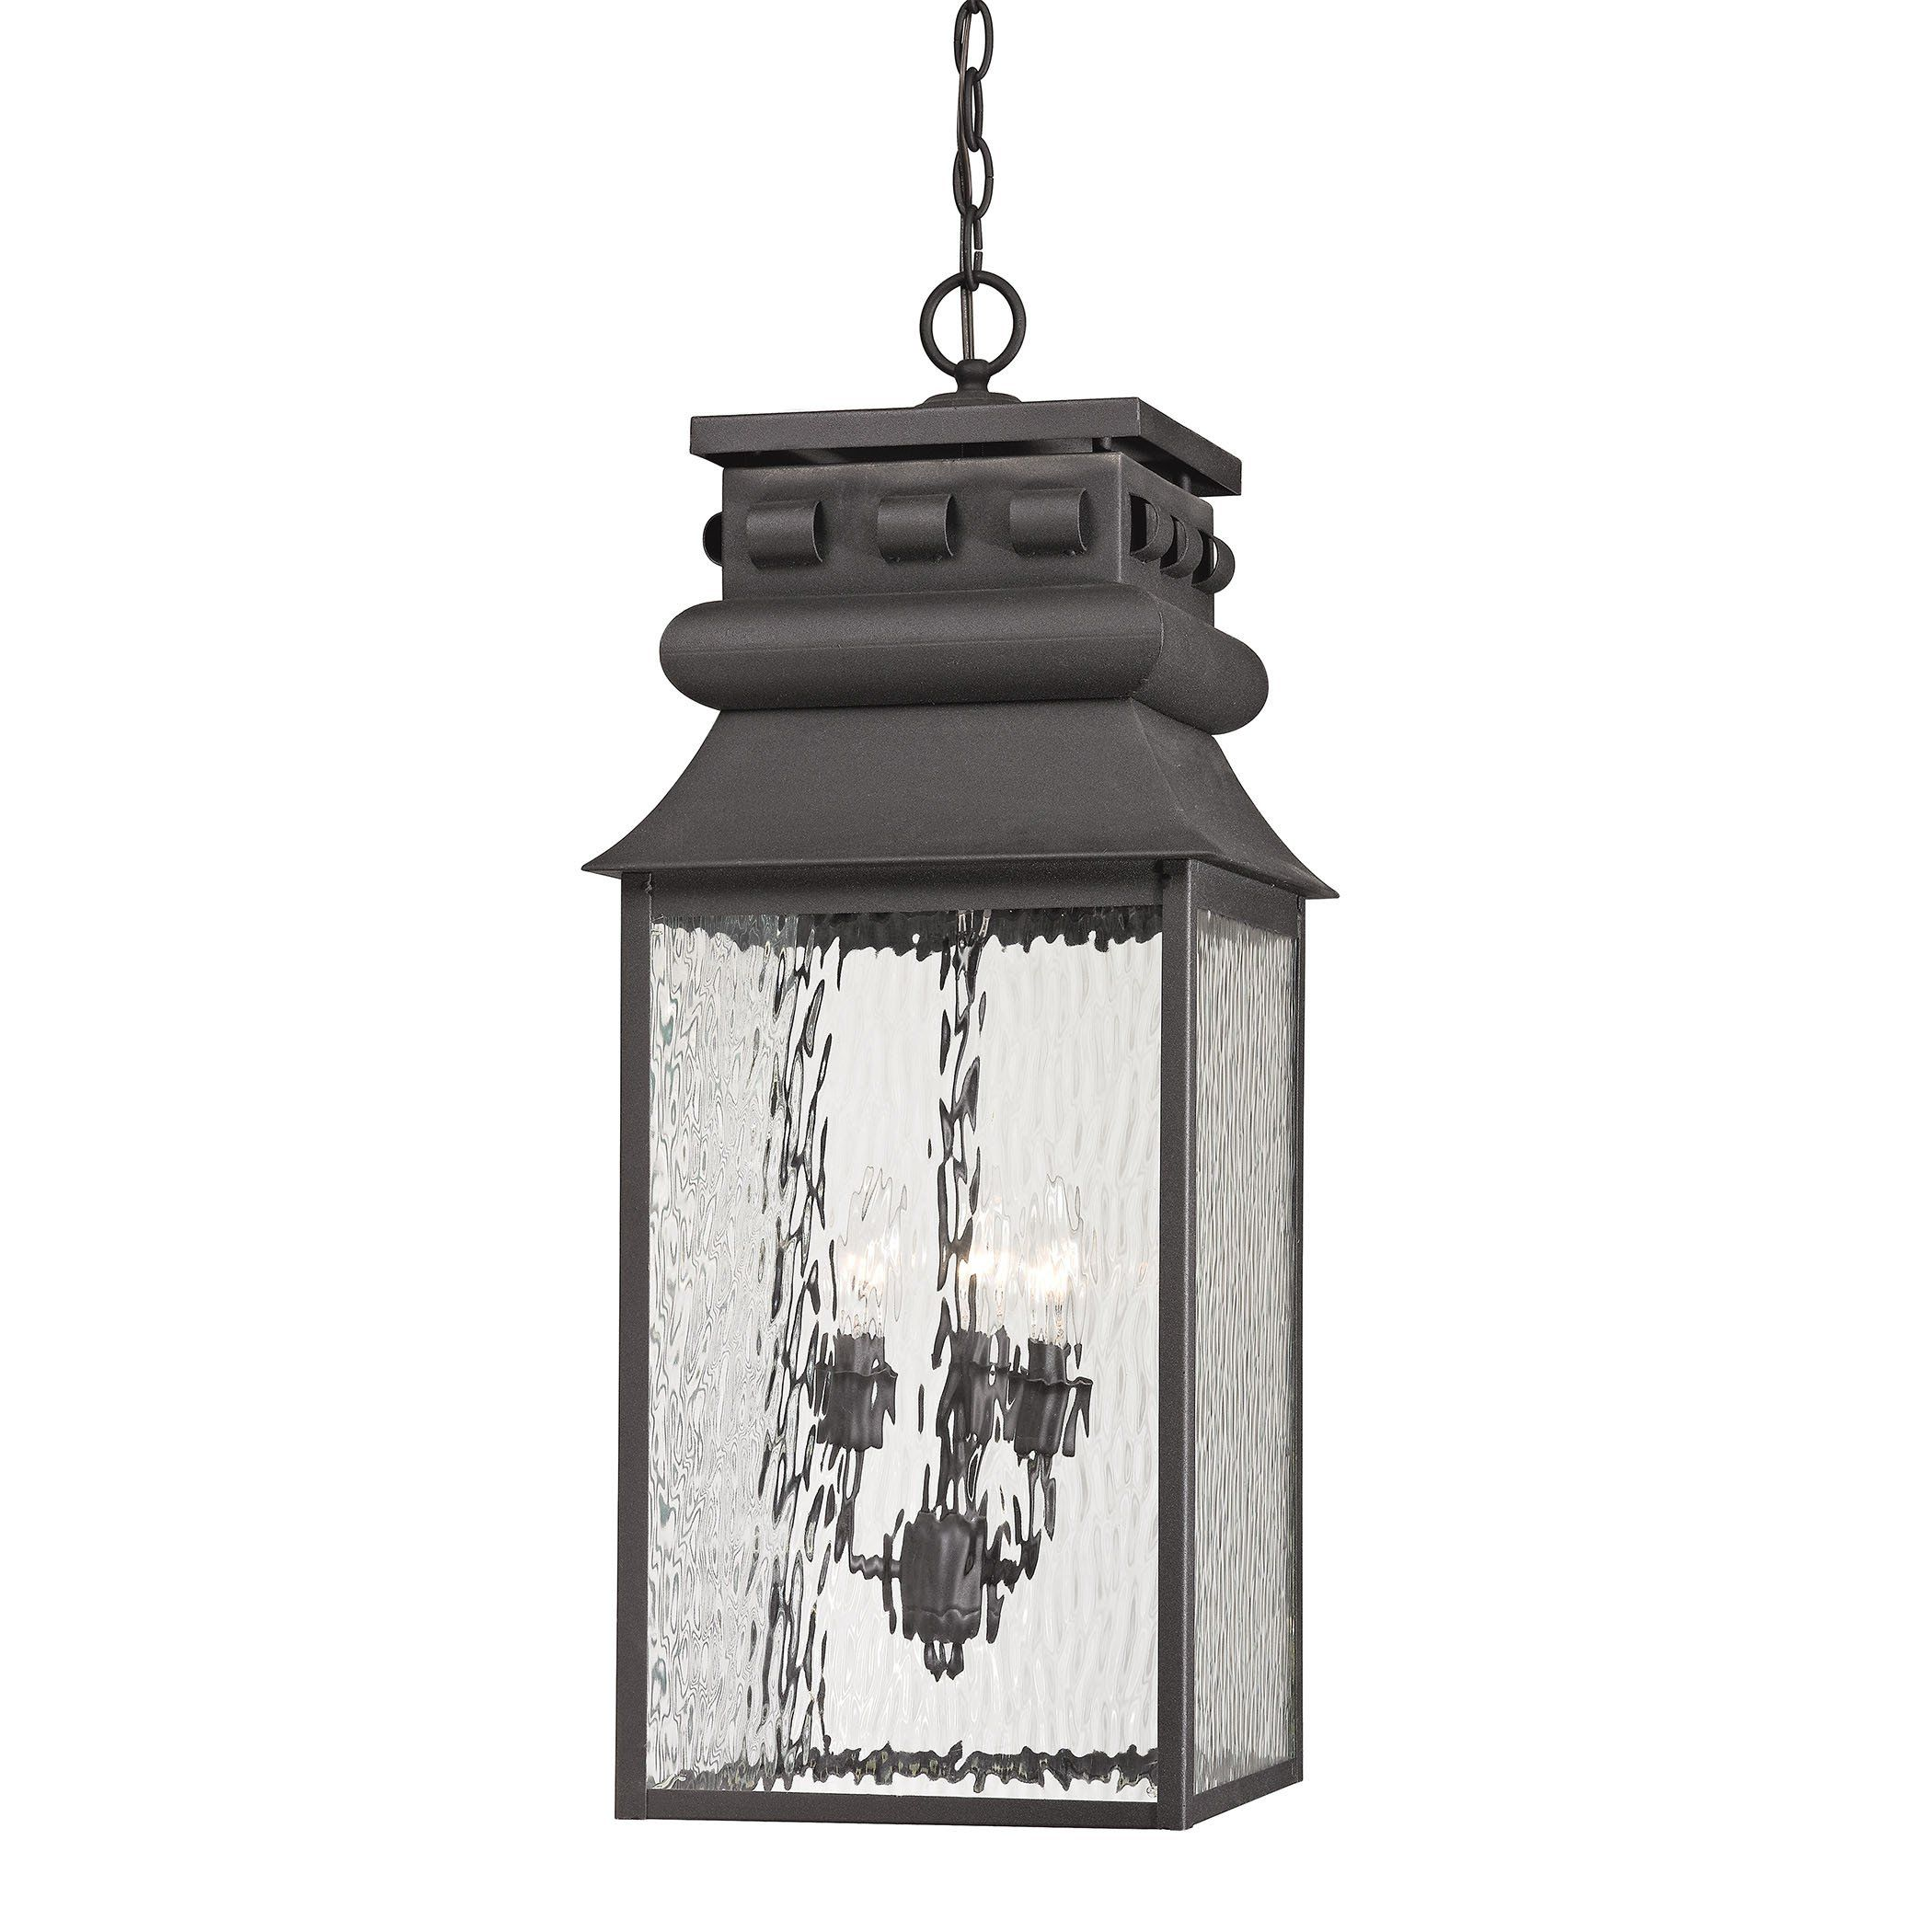 Shop Westmore Lighting Forged Lancaster 3 Light Outdoor Pendant At Lowes Canada Find Our Selection Of The Lowest Price